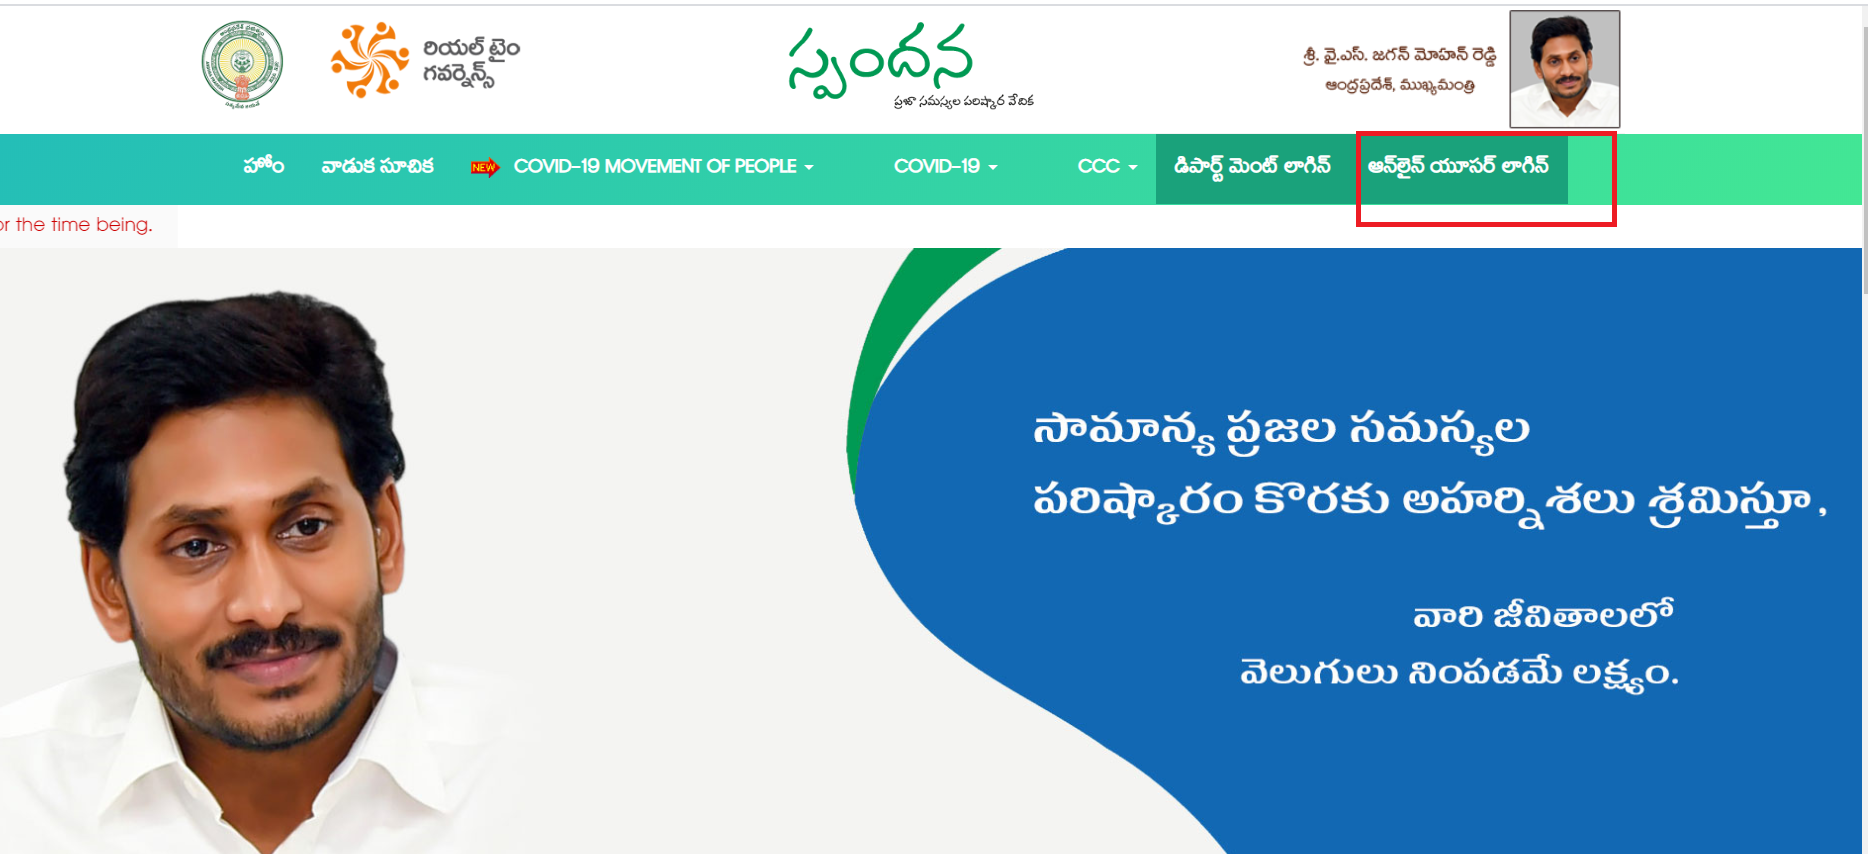 EPDS AP : AP Ration Card Status 2020 with Aadhar / Ration Card Number